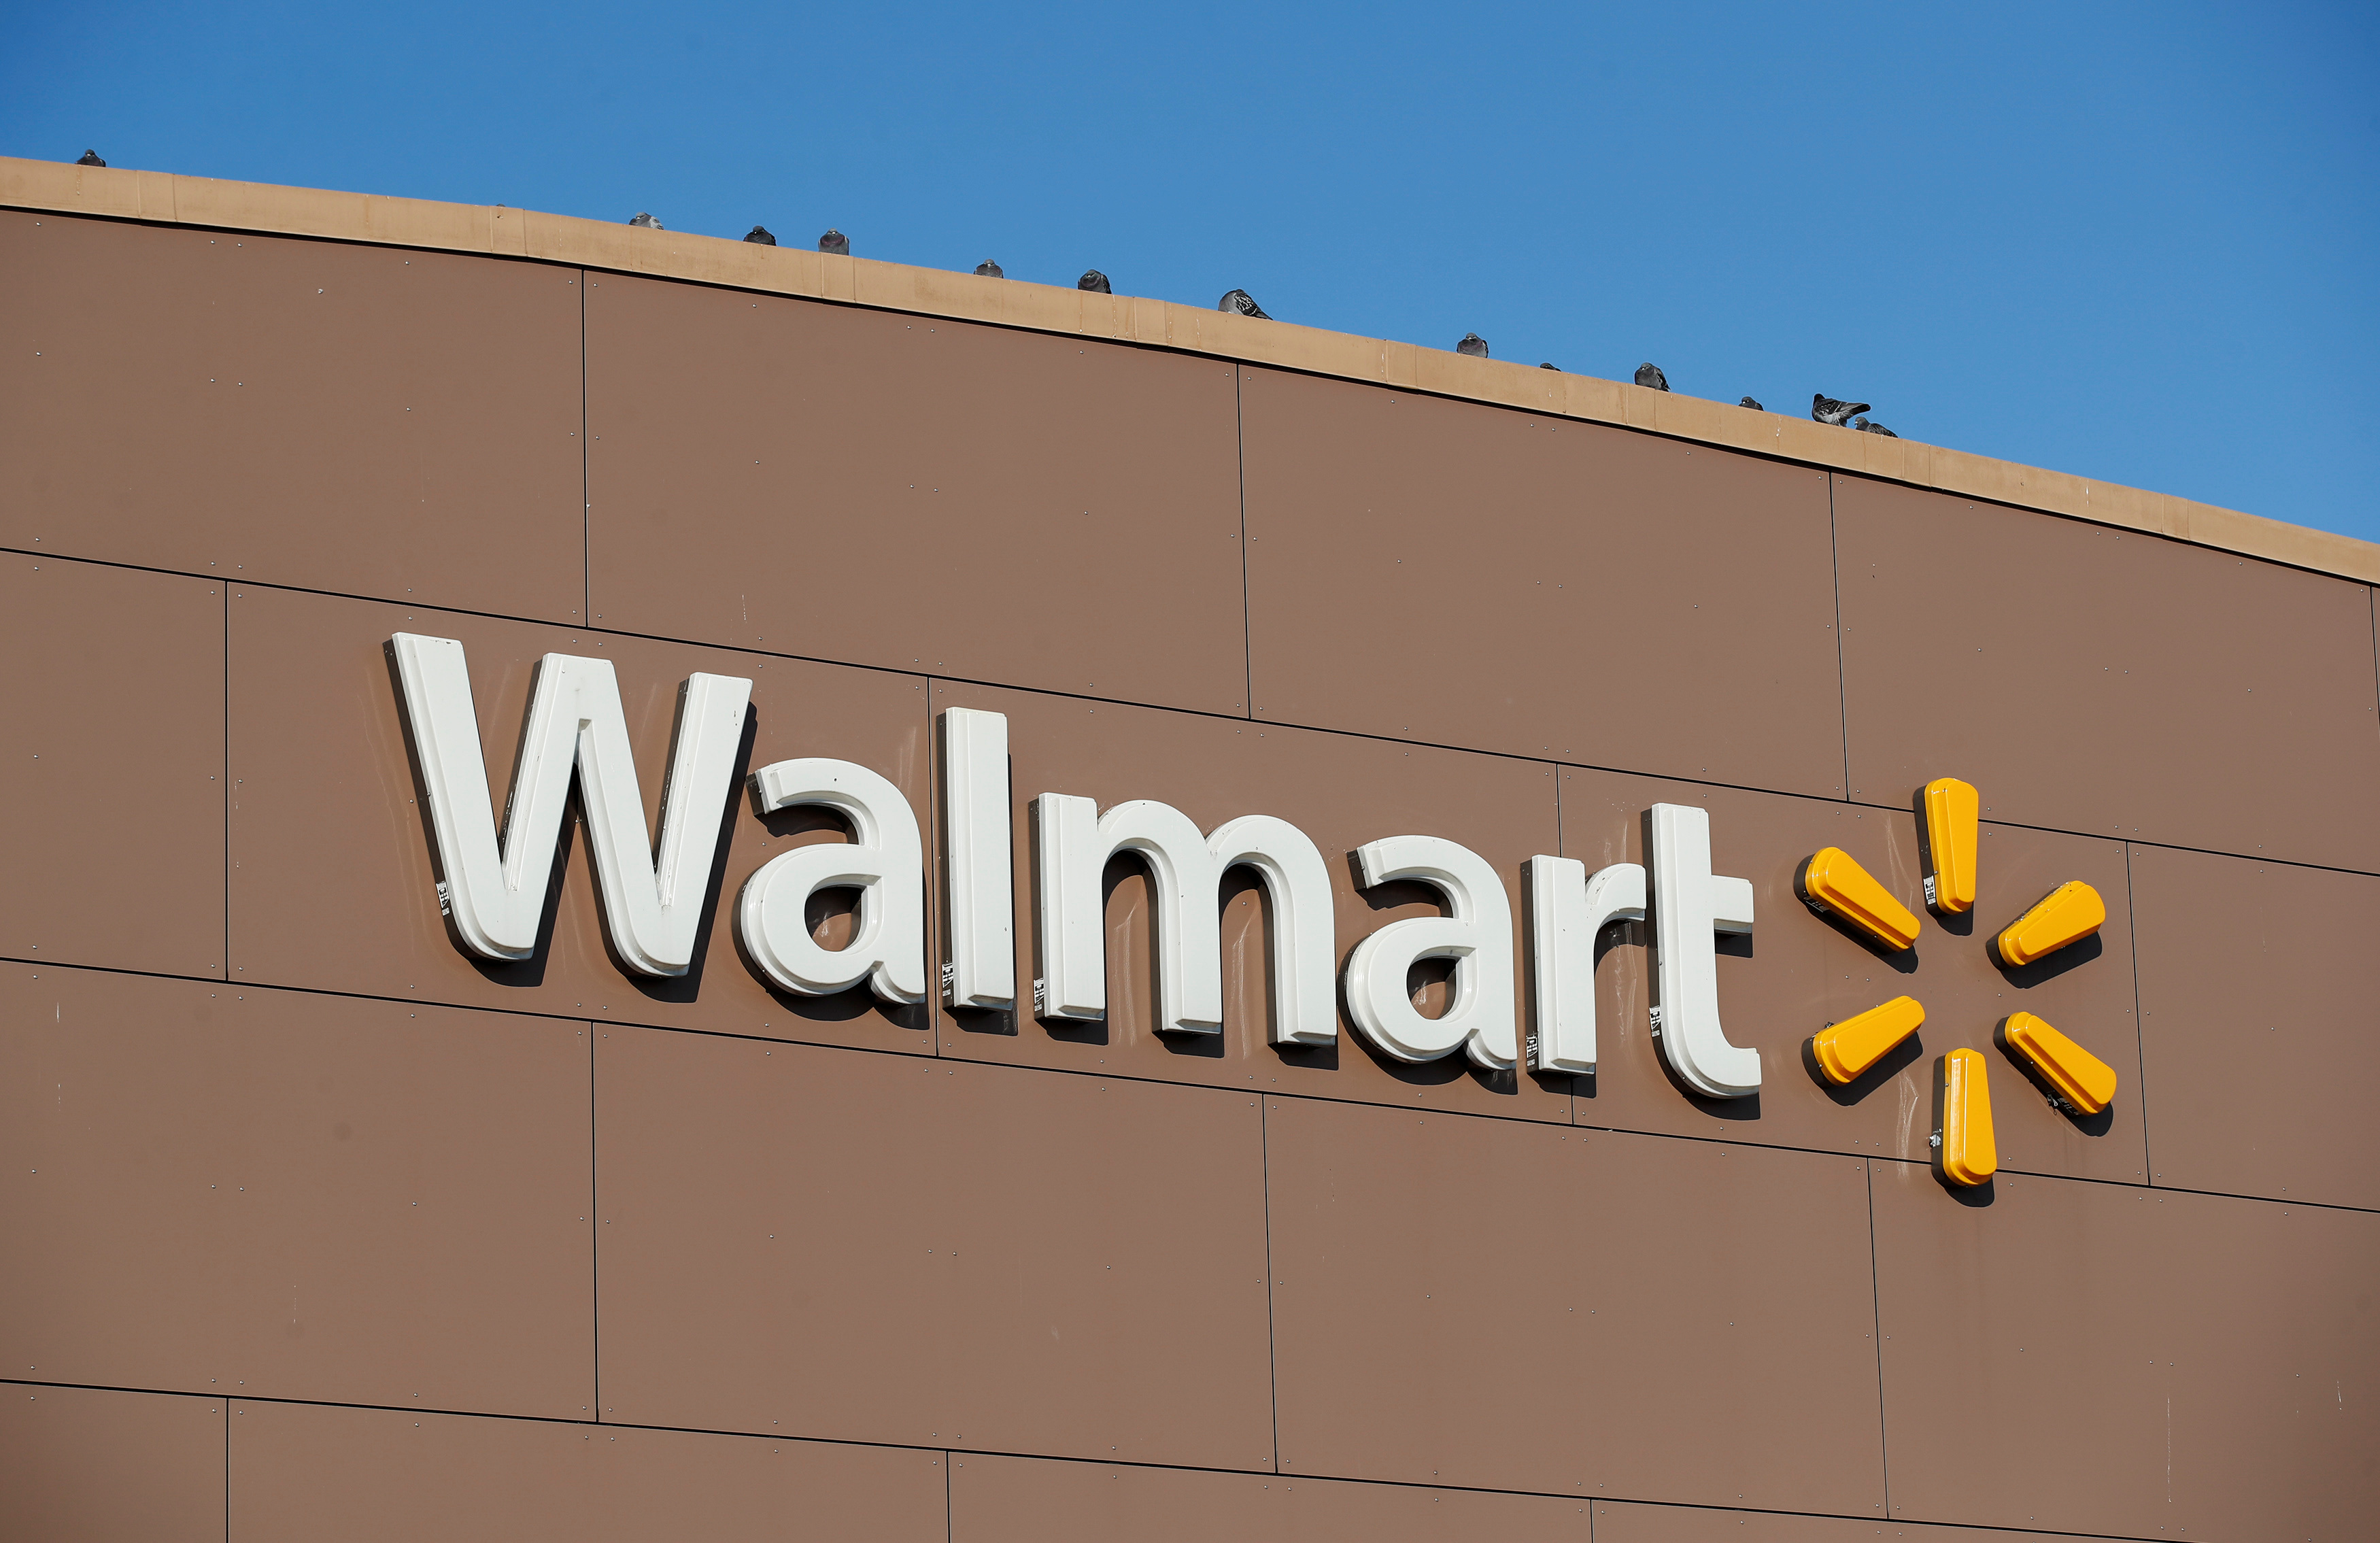 Walmart's logo is seen outside one of the stores in Chicago, Illinois. REUTERS/Kamil Krzaczynski